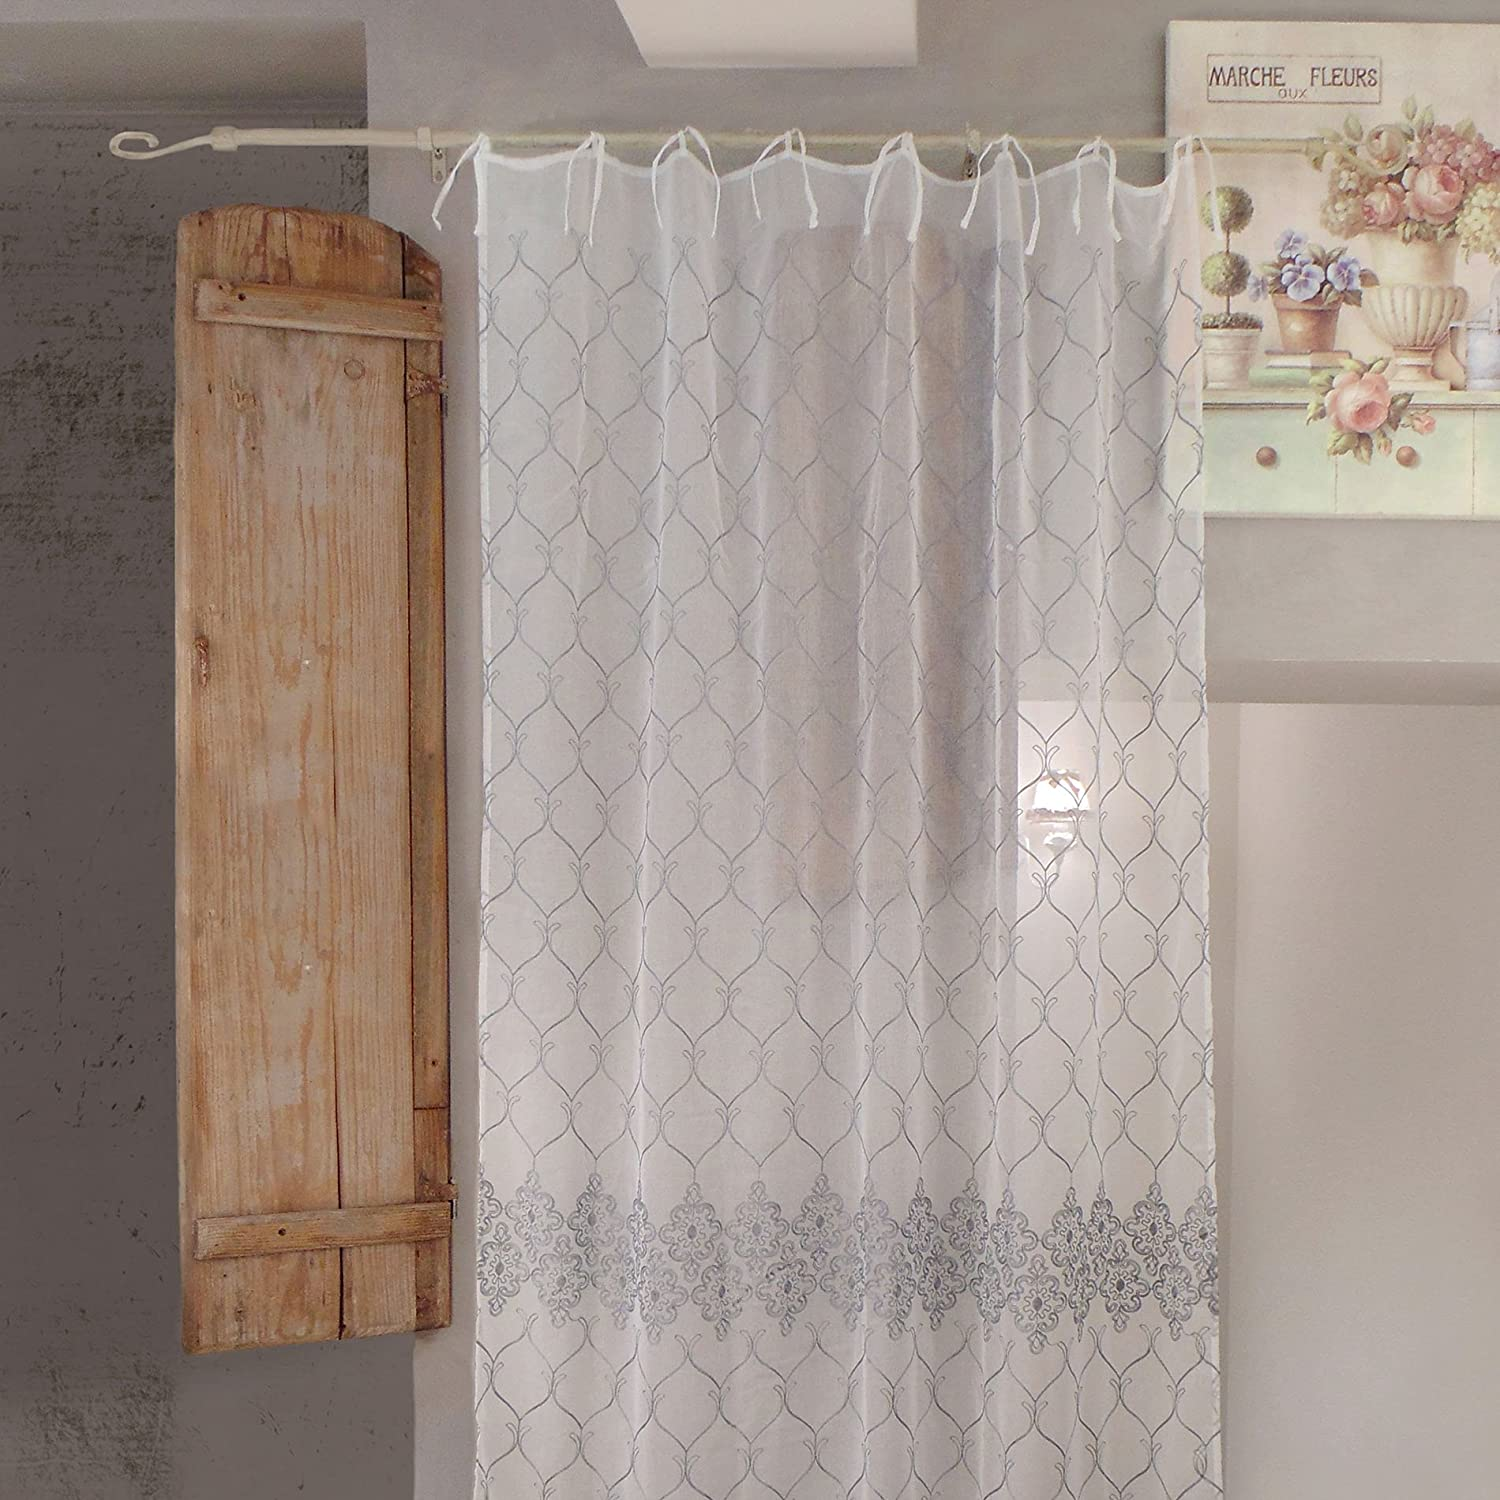 AT17 Tenda Shabby Chic Poliestere Ricamata 140 x 270 Colore off White Ricamo Grigio Voile Planete Collection